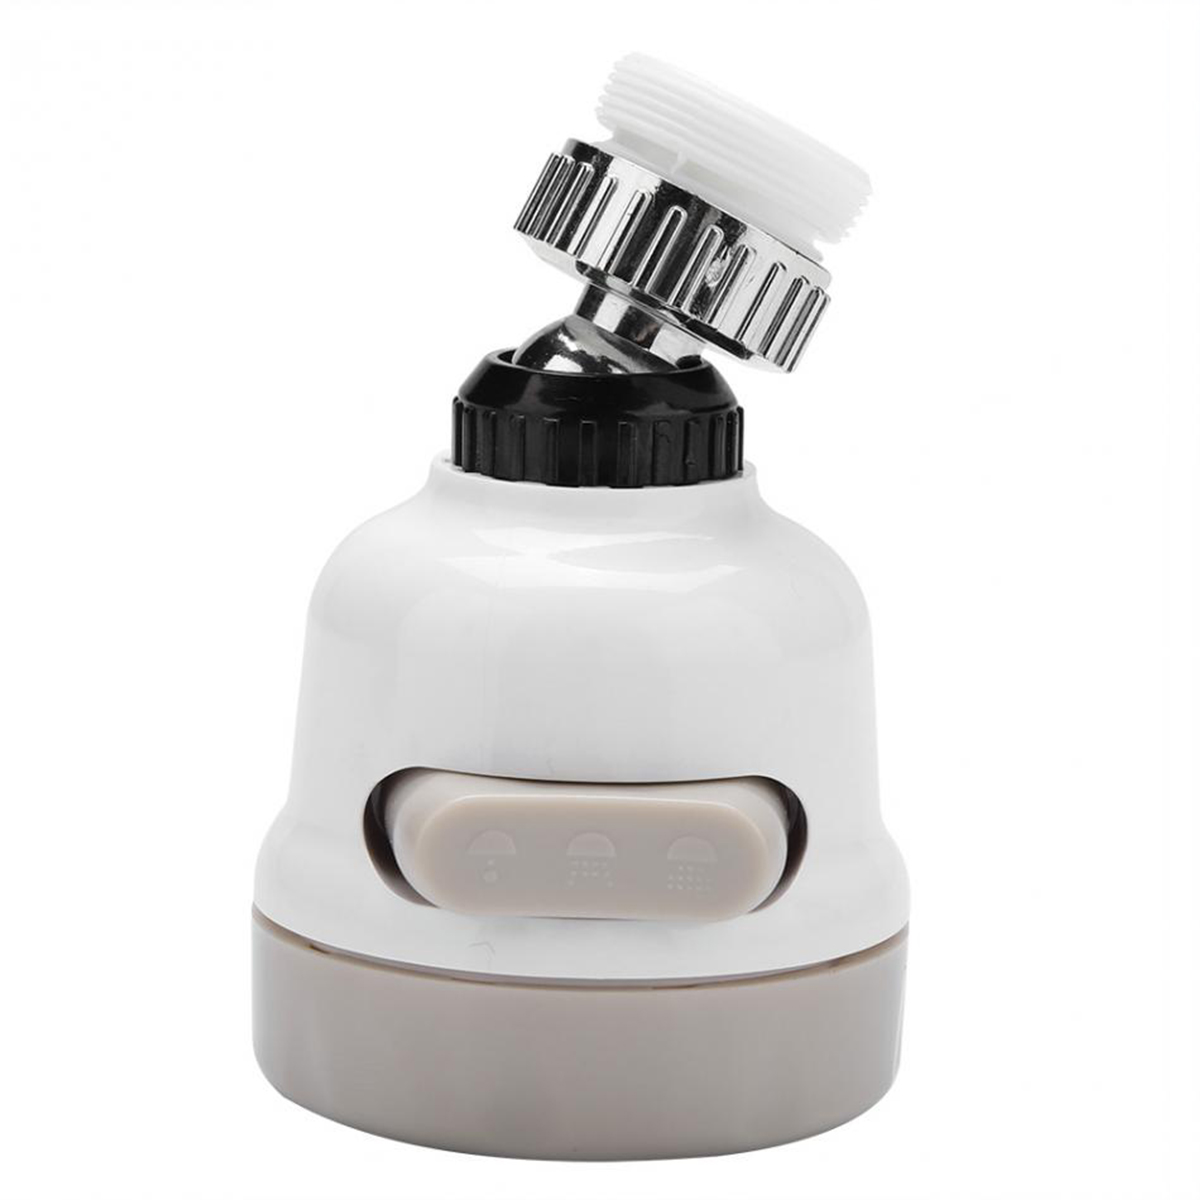 360° Rotating Kitchen Faucet Kitchen Moveable Flexible Tap Head Shower Diffuser Rotatable Nozzle Adjustable Booster Faucet